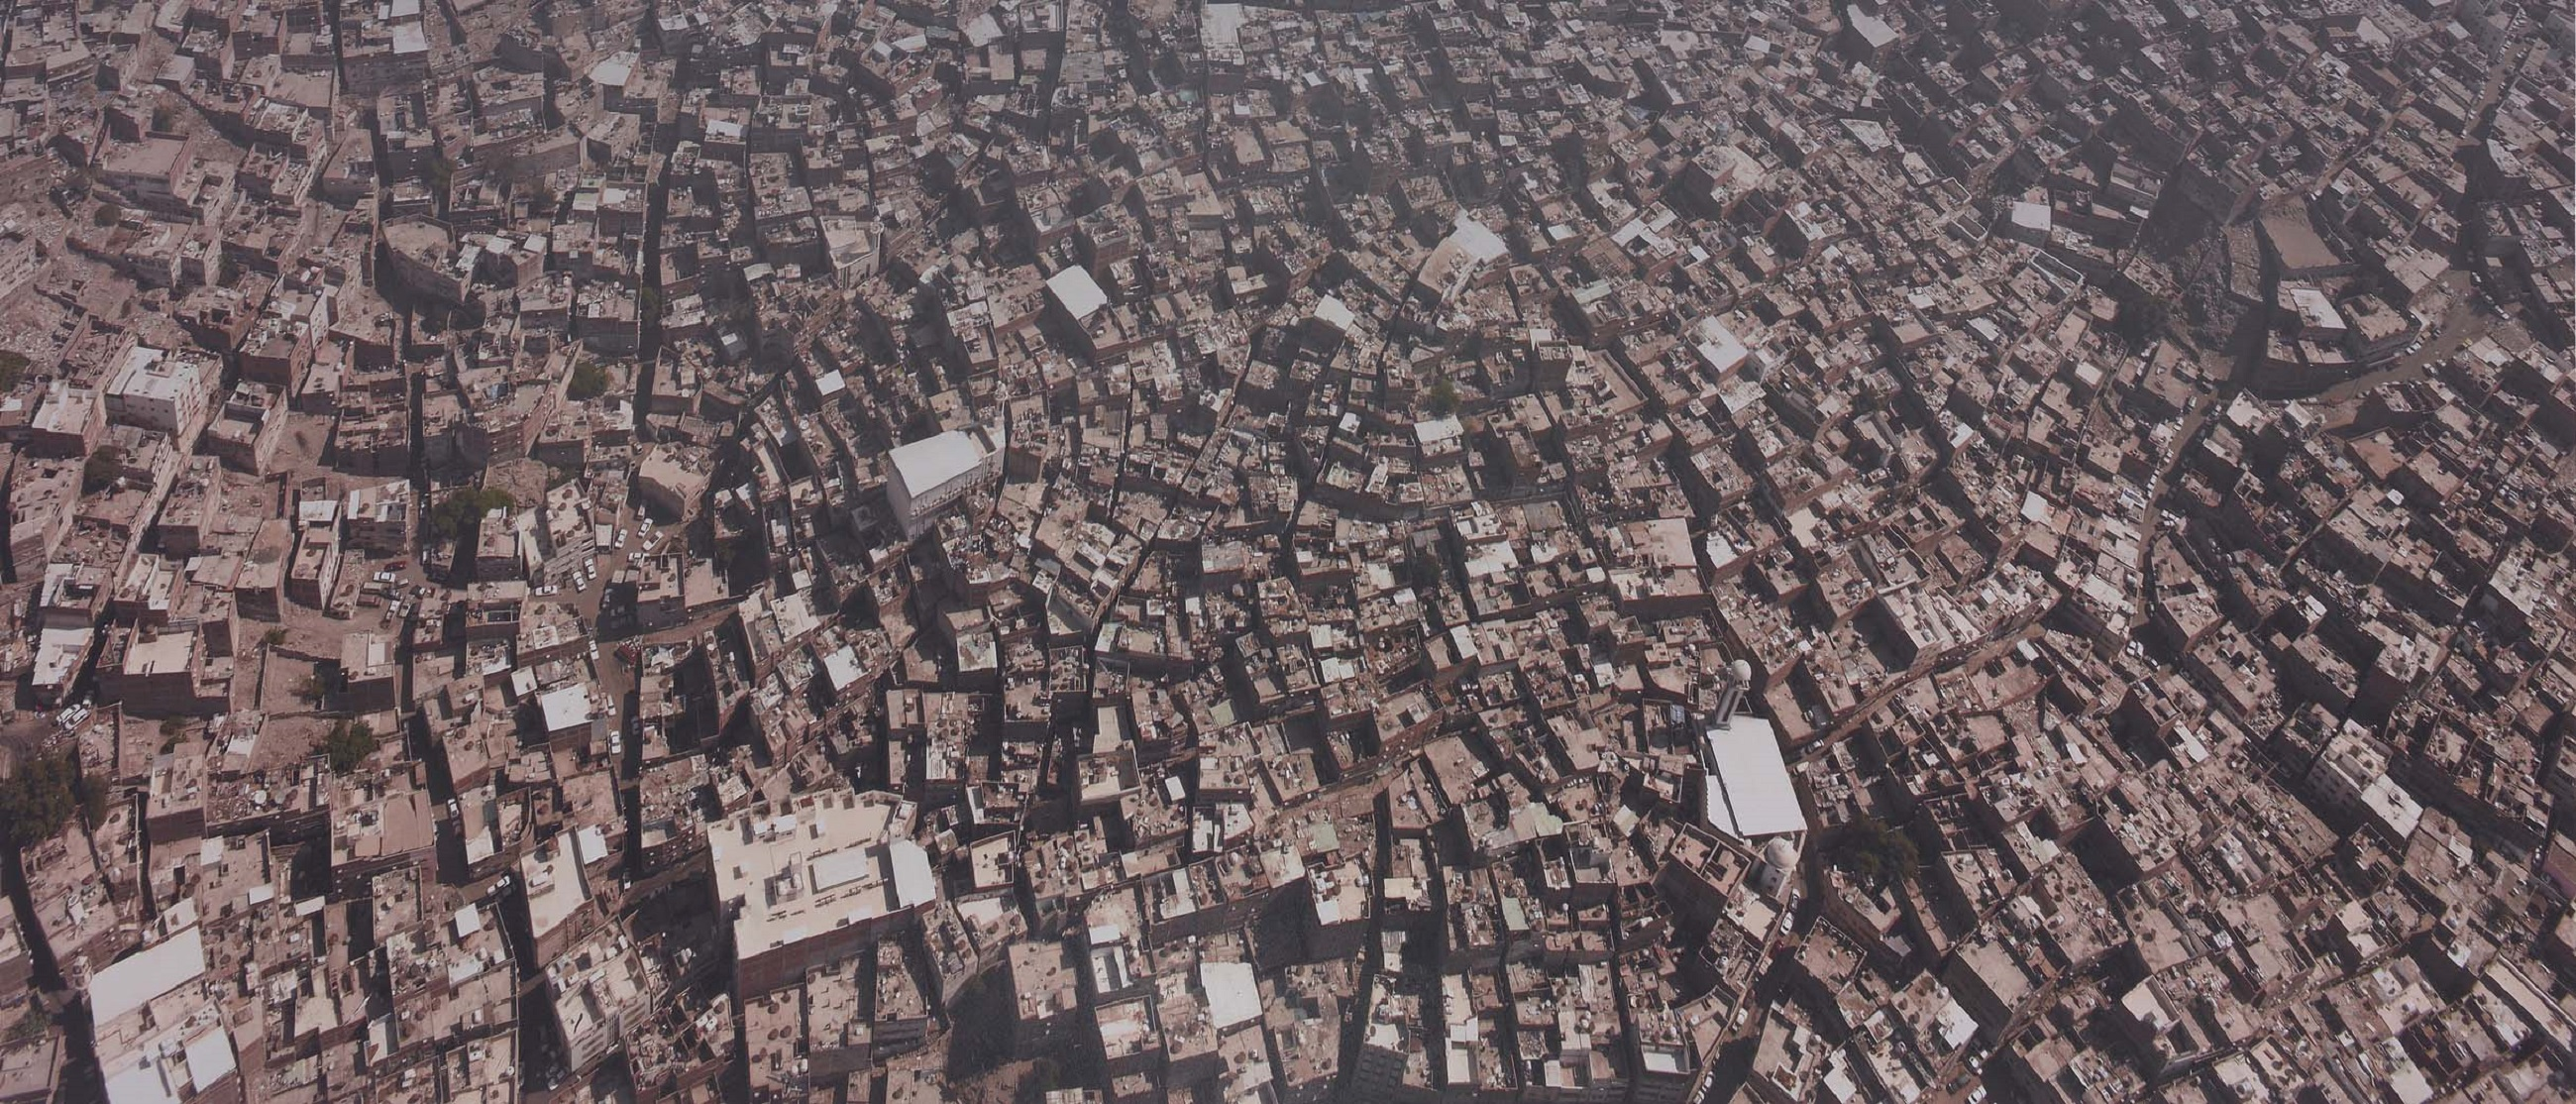 Detail, From the Real to the Symbolic City, From the series Desert of Pharan (2011–13), Ahmed Mater (Saudi Arabia, b. 1979), 2012, Color photograph, Purchase—Friends of the Freer and Sackler Galleries, S2014.5 image